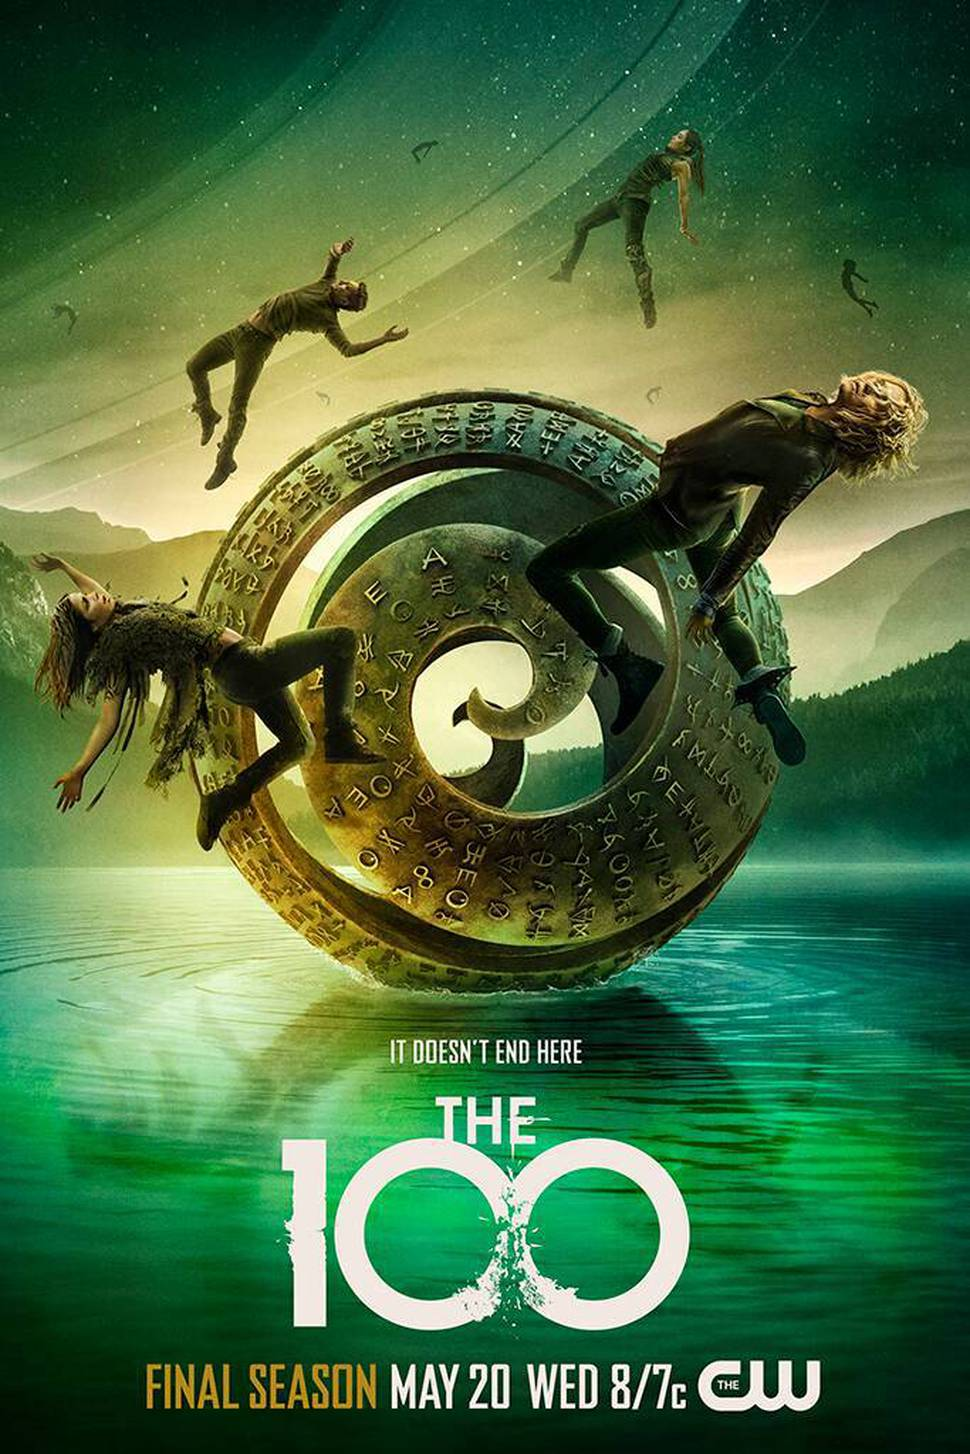 The 100 - Season 7 Poster - It Doesn't End Here